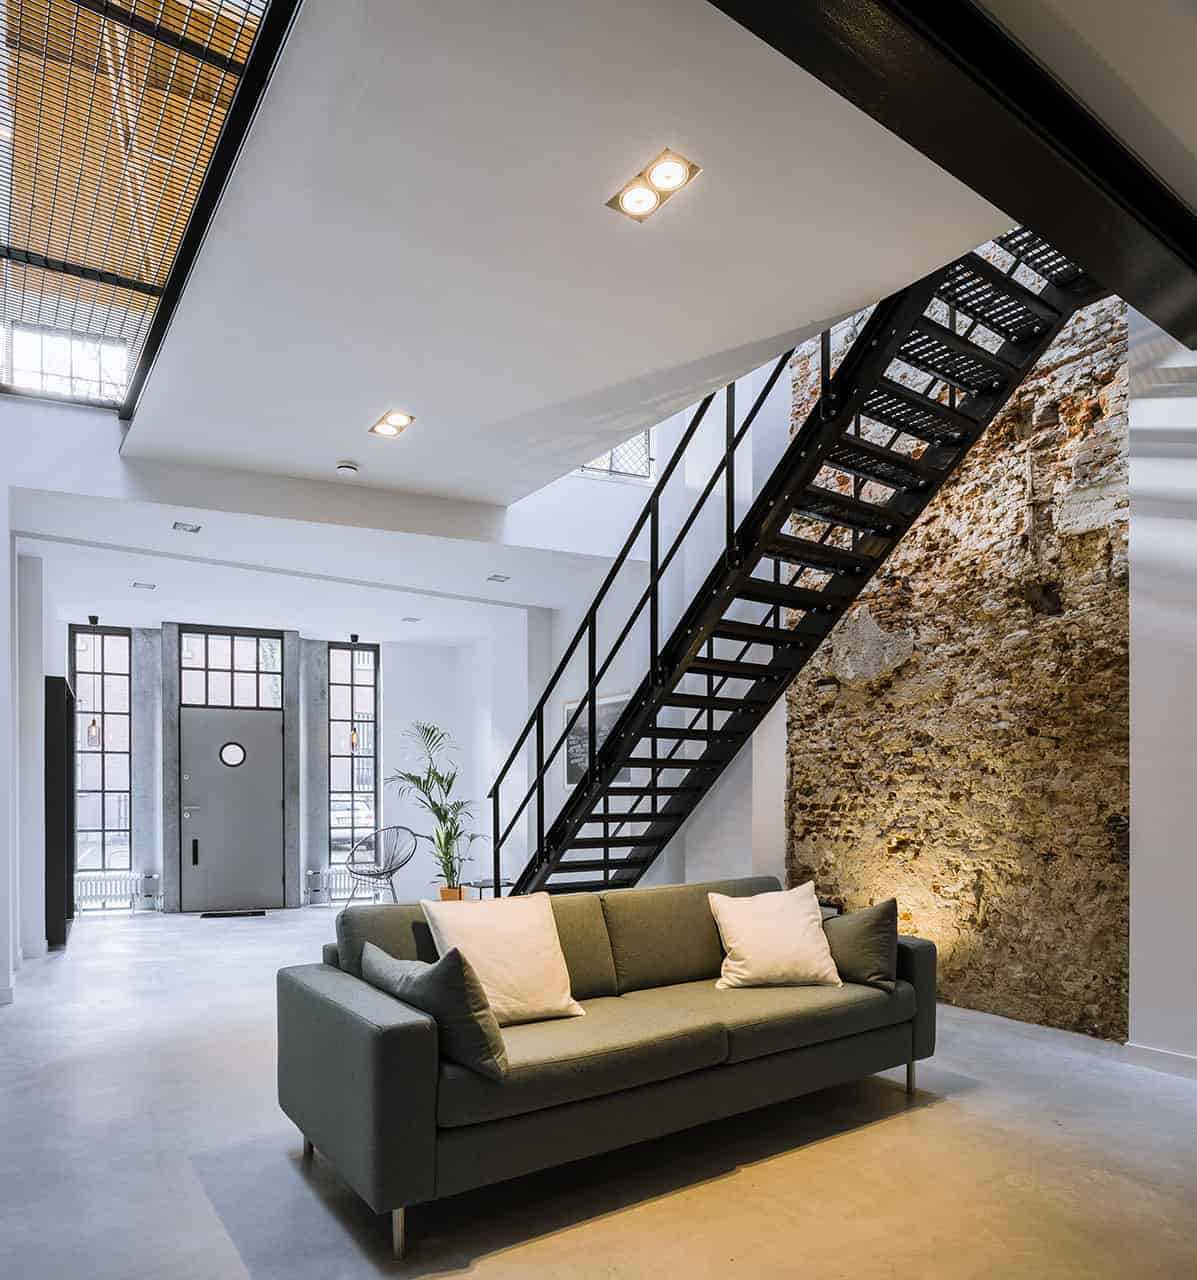 This interior view of the house shows the foyer as you enter the main door. It has a white interior with simple white walls, ceiling and industrial-style flooring. This makes the black mudroom and metal stairs stand out as well as the potted plant in the corner.